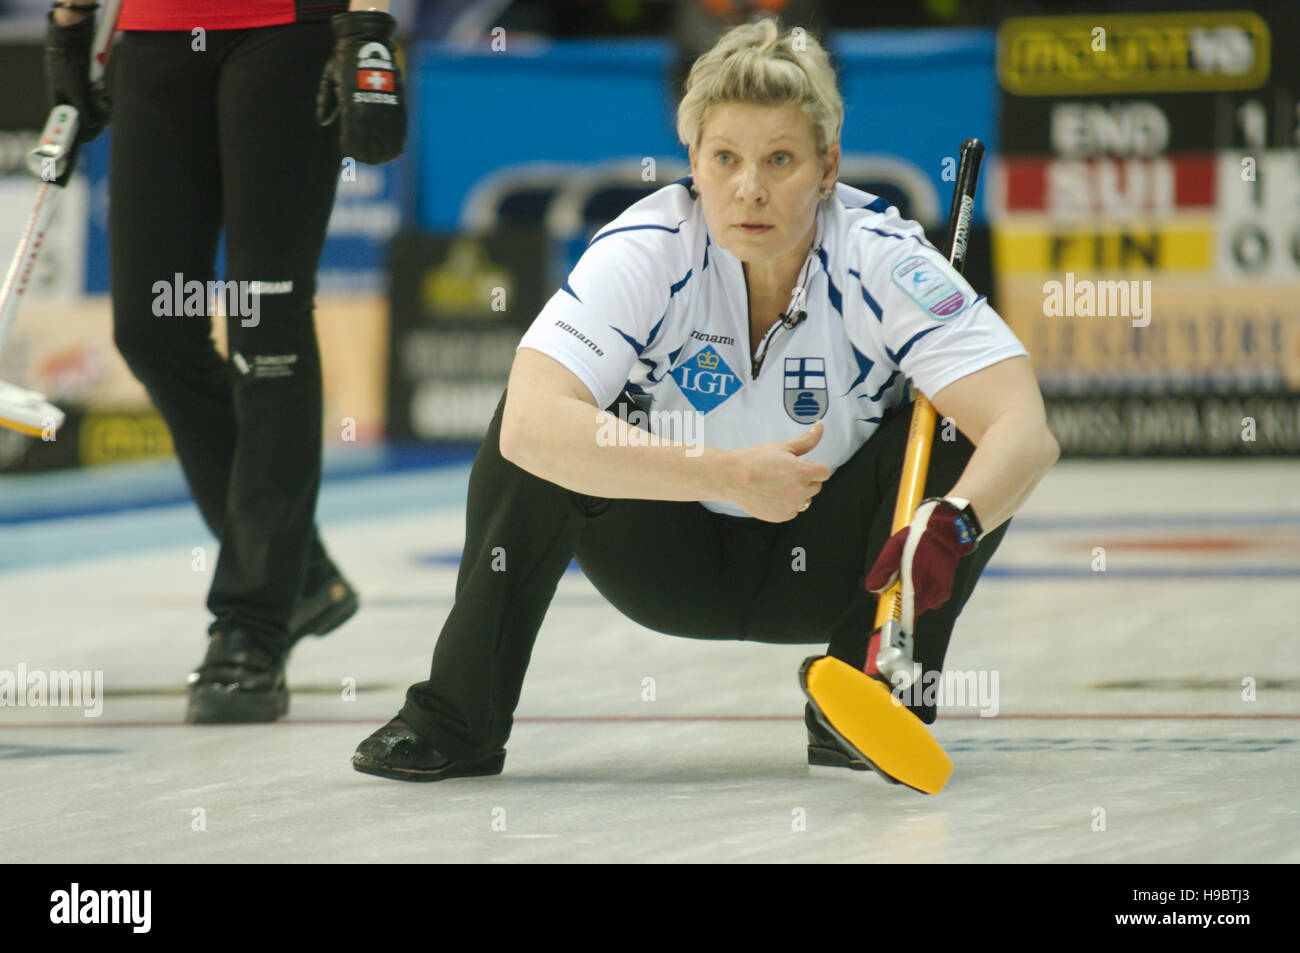 Braehead Arena, Renfrewshire, Scotland, 22 November 2016. Anne Malmi, skip of Finland, watching a stone during the - Stock Image